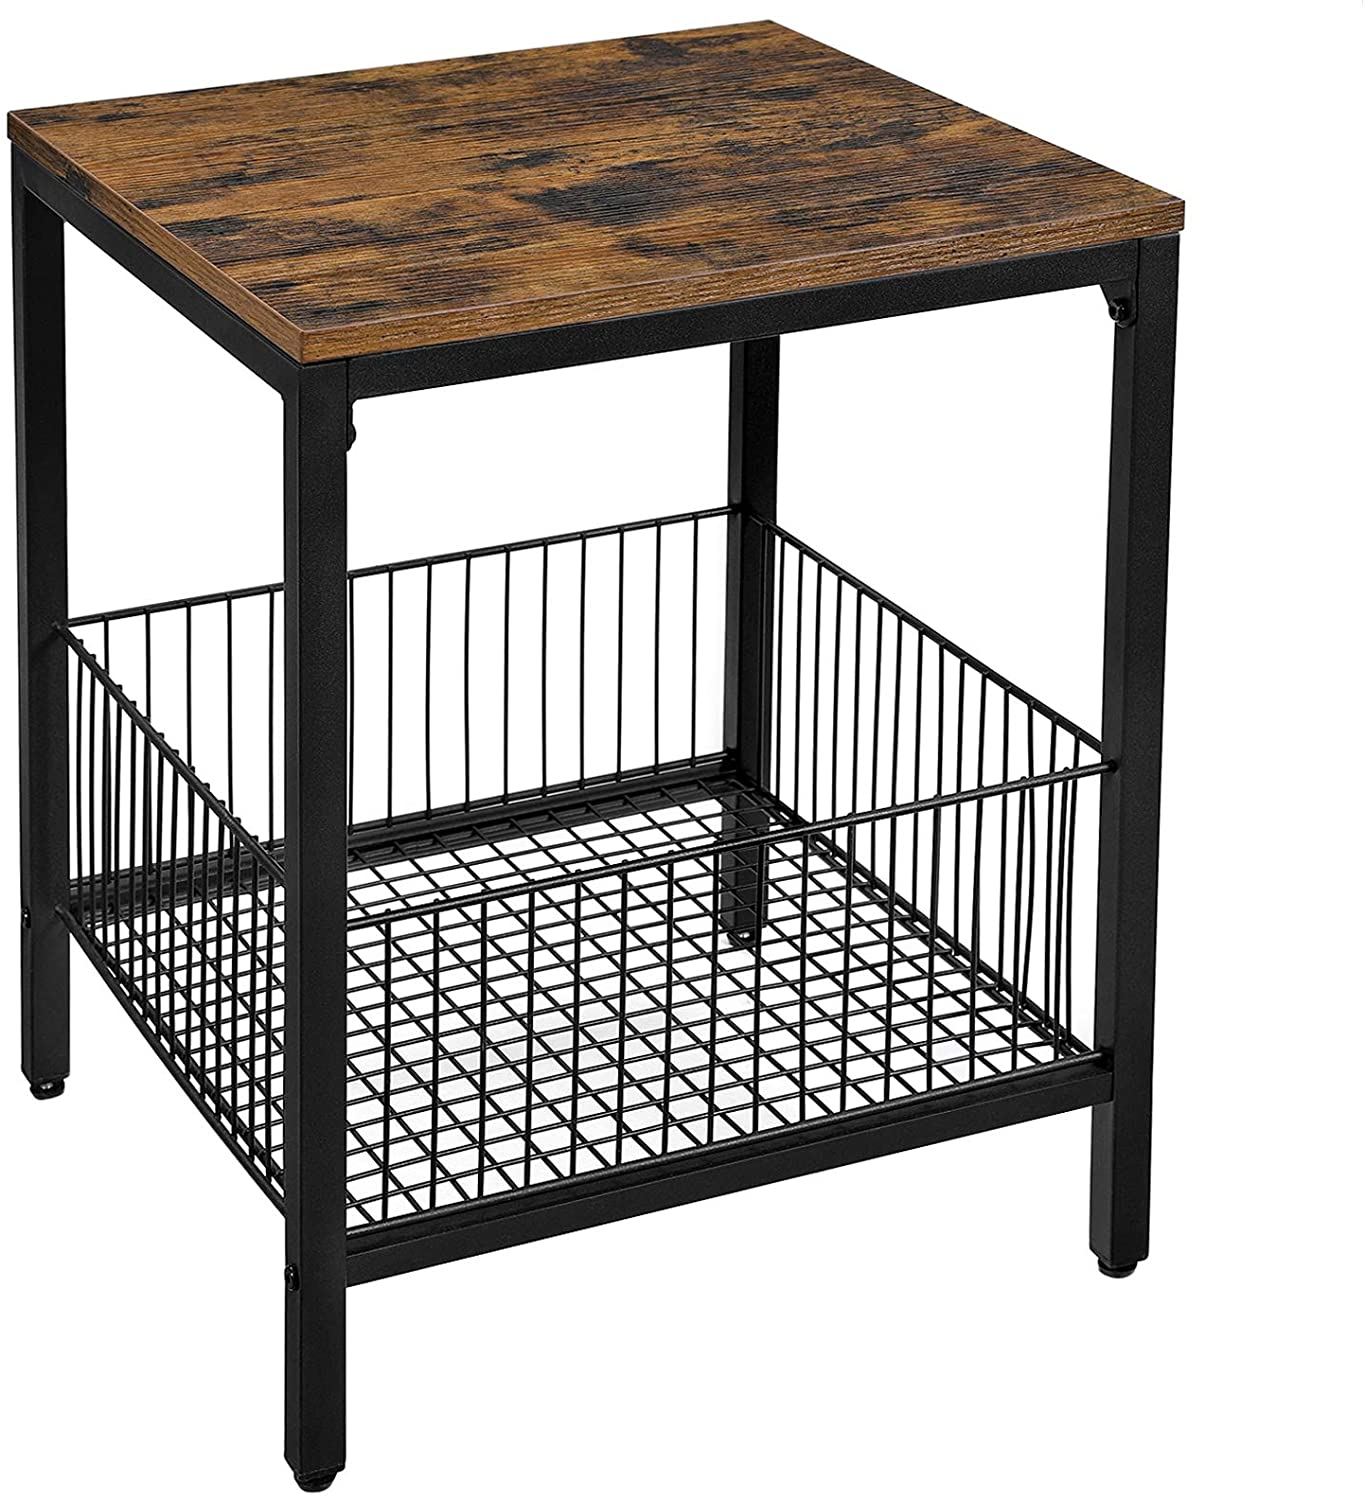 Enjoy fast, free nationwide shipping!  Family owned and operated, HawkinsWoodshop.com is your one stop shop for affordable furniture.  Shop HawkinsWoodshop.com for solid wood & metal modern, traditional, contemporary, industrial, custom, rustic, and farmhouse furniture including our Ryan Wire Basket Industrial Farmhouse Side Table.